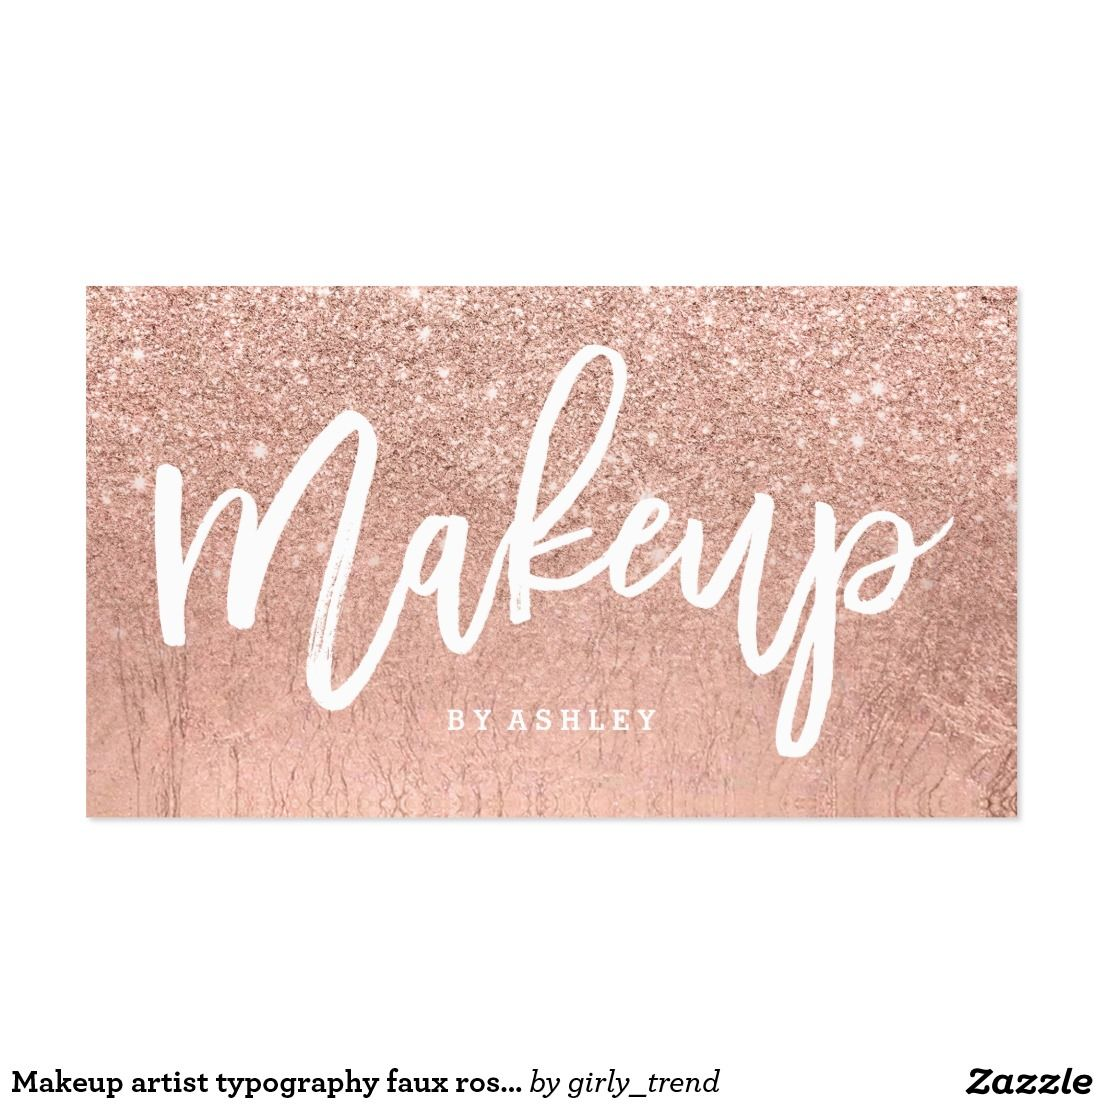 Makeup artist typography faux rose gold glitter business card makeup artist typography faux rose gold glitter business card colourmoves